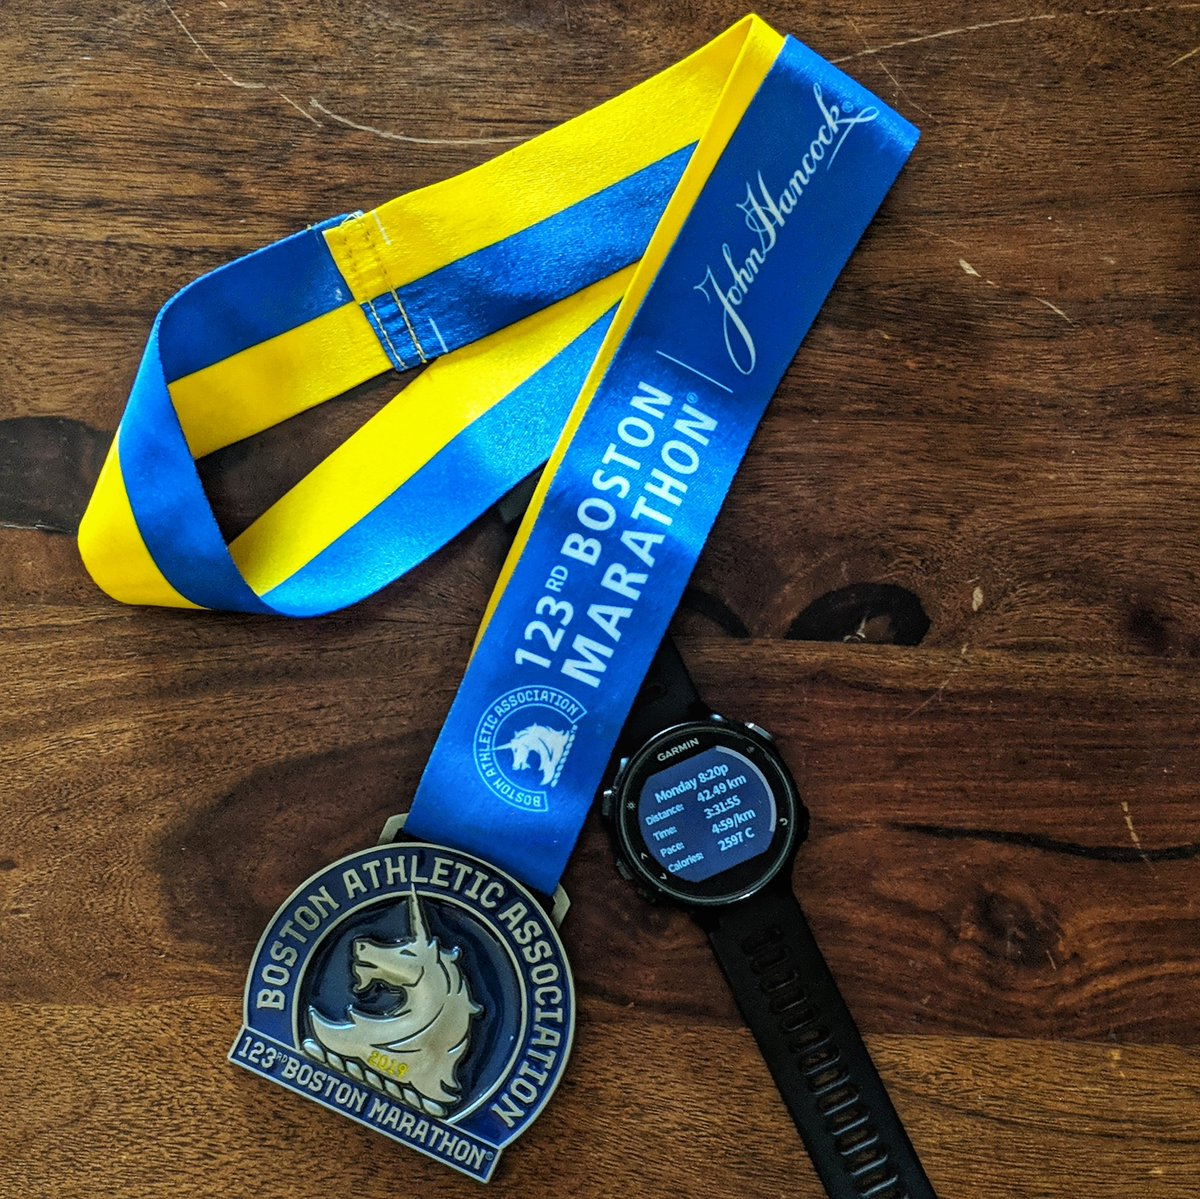 123rd Boston Marathon. One of my best &amp; toughest races so far. It&#39;s breaks you but it kills but in the end it&#39;s all so worth it. Thankyou @Garmin_India for  all the love and support #garmin #running #BostonMarathon #boston2019<br>http://pic.twitter.com/DvtlDim2Sk